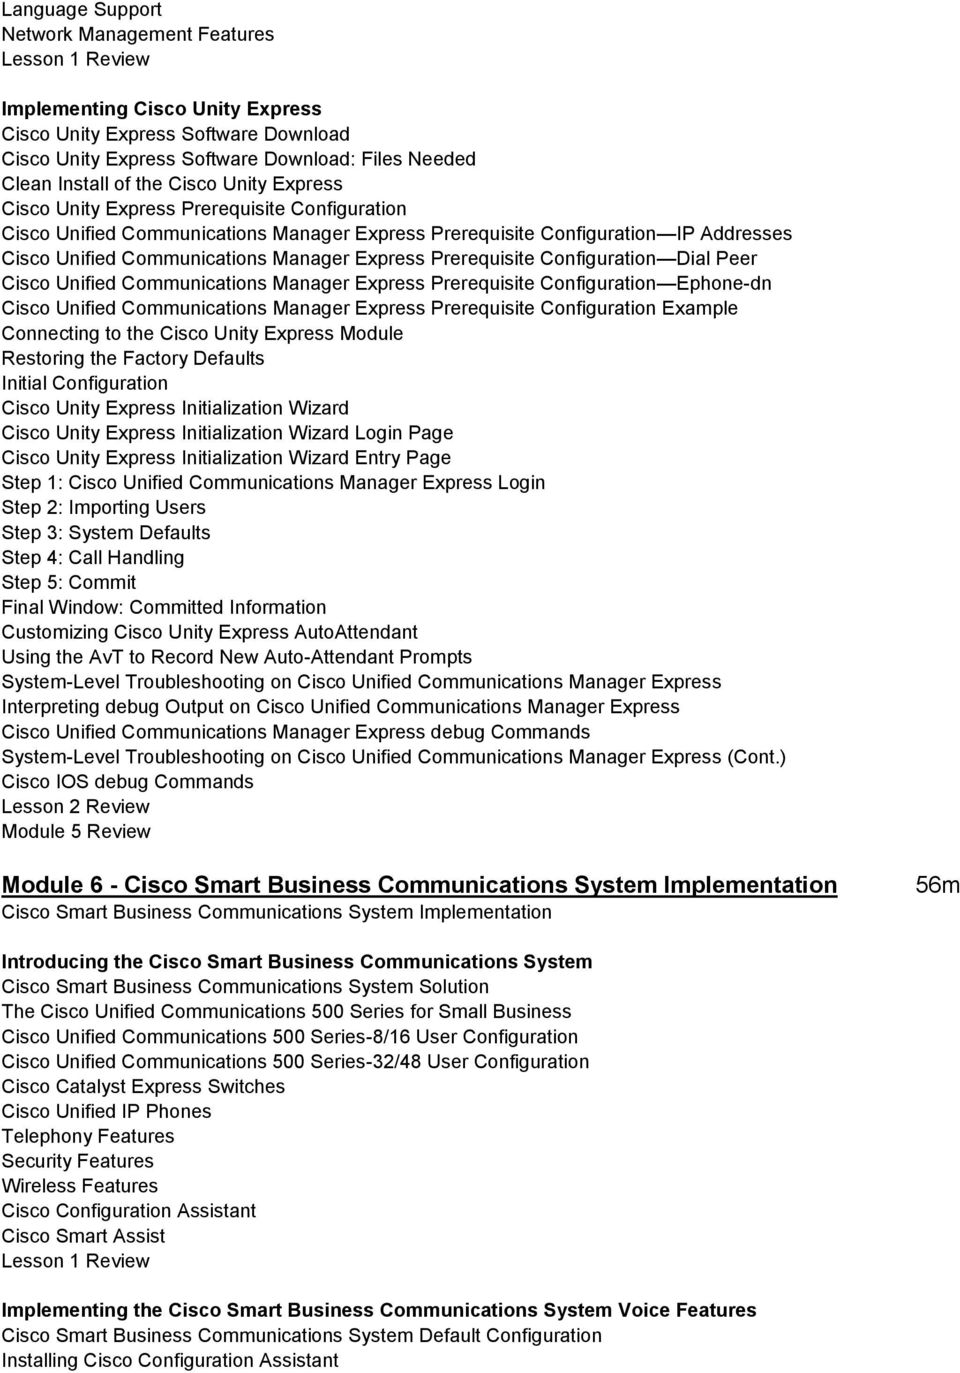 Implementing Cisco IOS Unified Communications (IIUC) - PDF